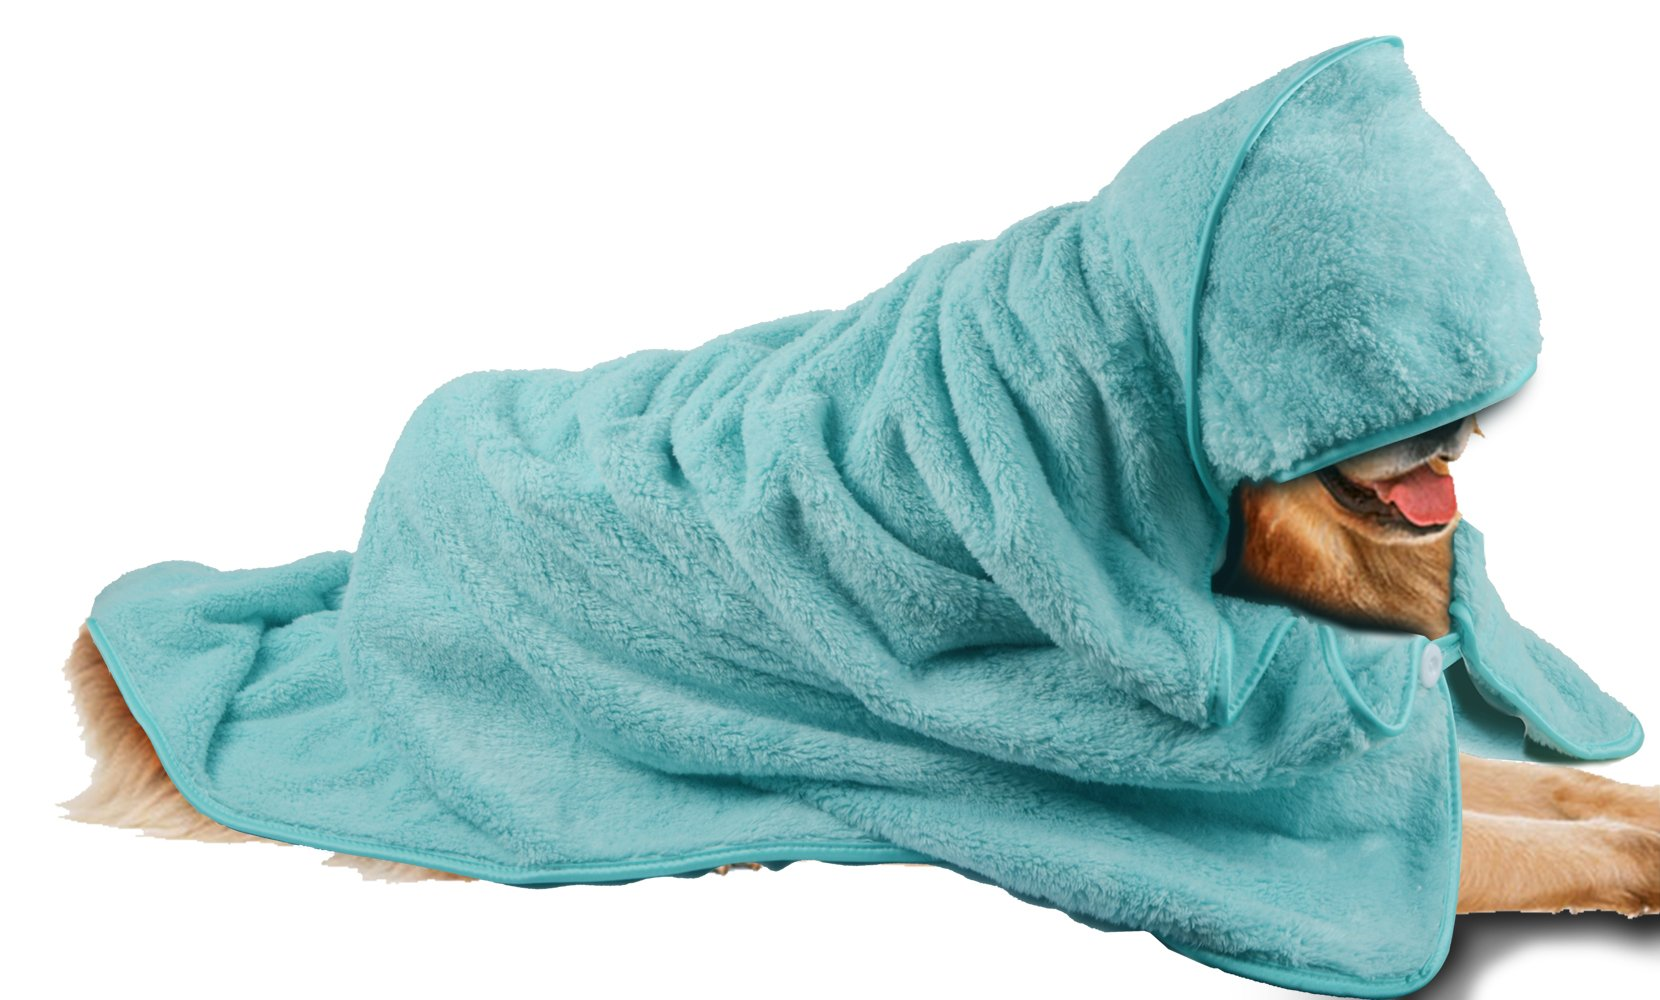 Sinland Microfiber Oversized Hooded Bath Pet Towel for Dogs and Cats Lightcyan 100cm x 100cm